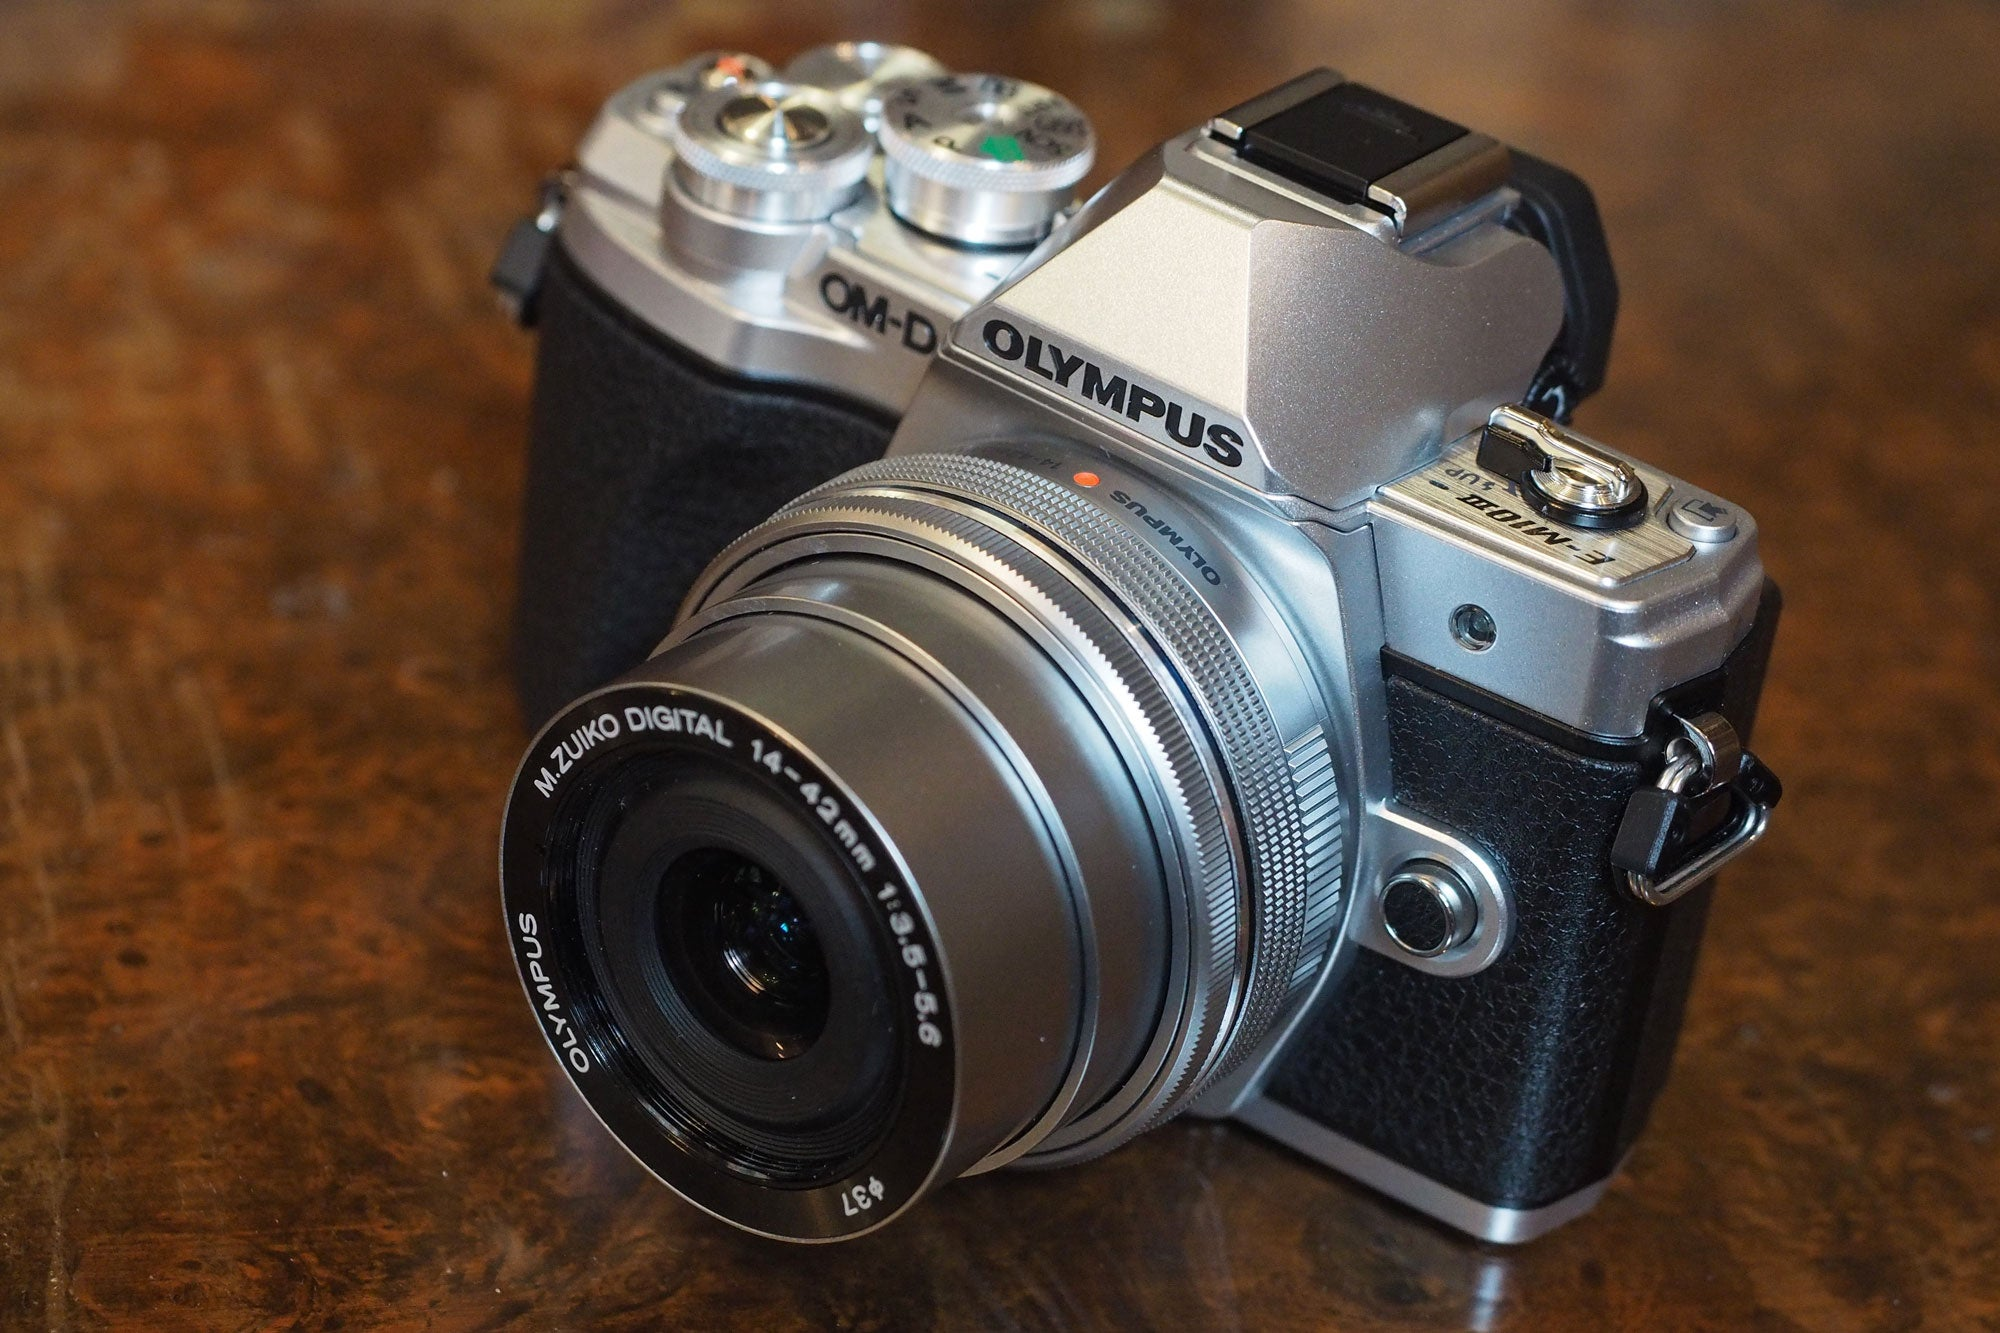 Olympus OM-D E-M10 Mark III hands-on - The Video Mode